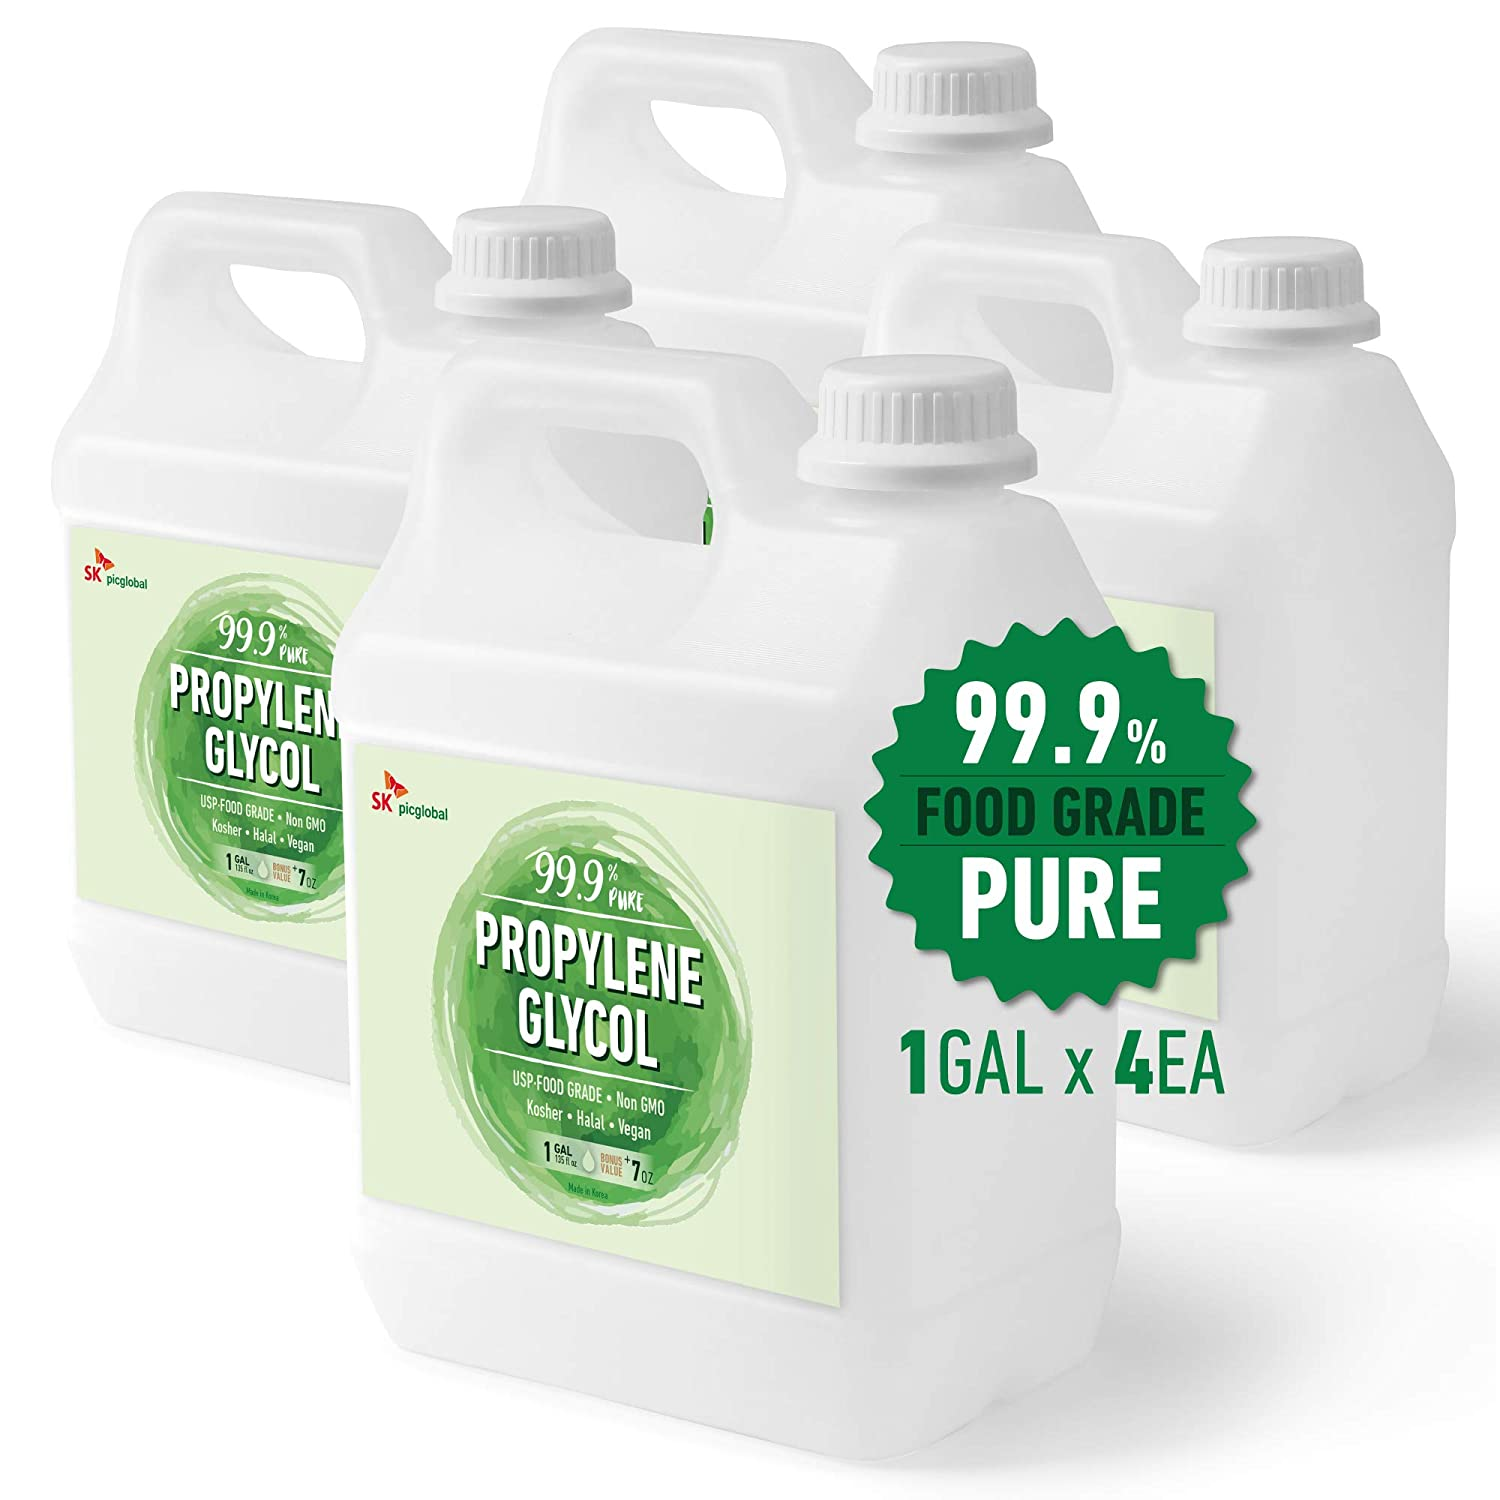 99.9% Pure Food Grade Propylene Glycol, 1 Gallon x 4, Moisturizer, Solvent and Humectant, for Fog Machines, Soaps, Lotions and Antifreeze Solution, Eco-Friendly, USP Certified, Kosher, Non-GMO